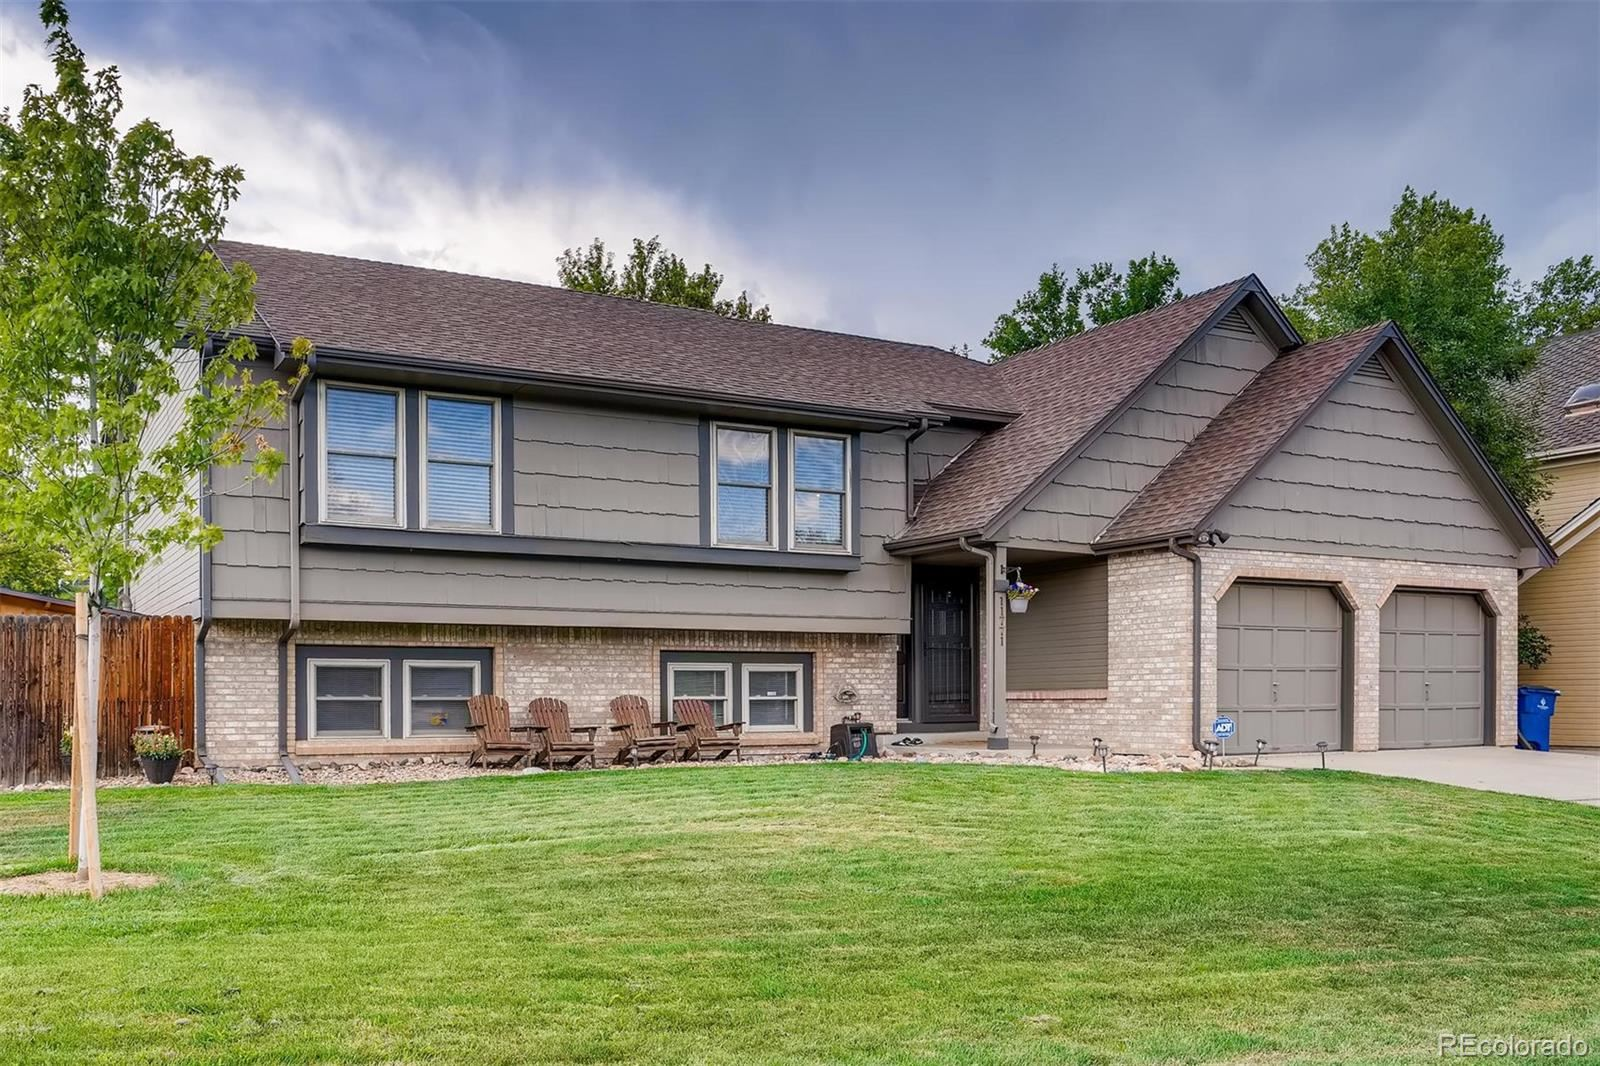 11771 W Prentice Place, Littleton, CO 80127 - #: 3188874